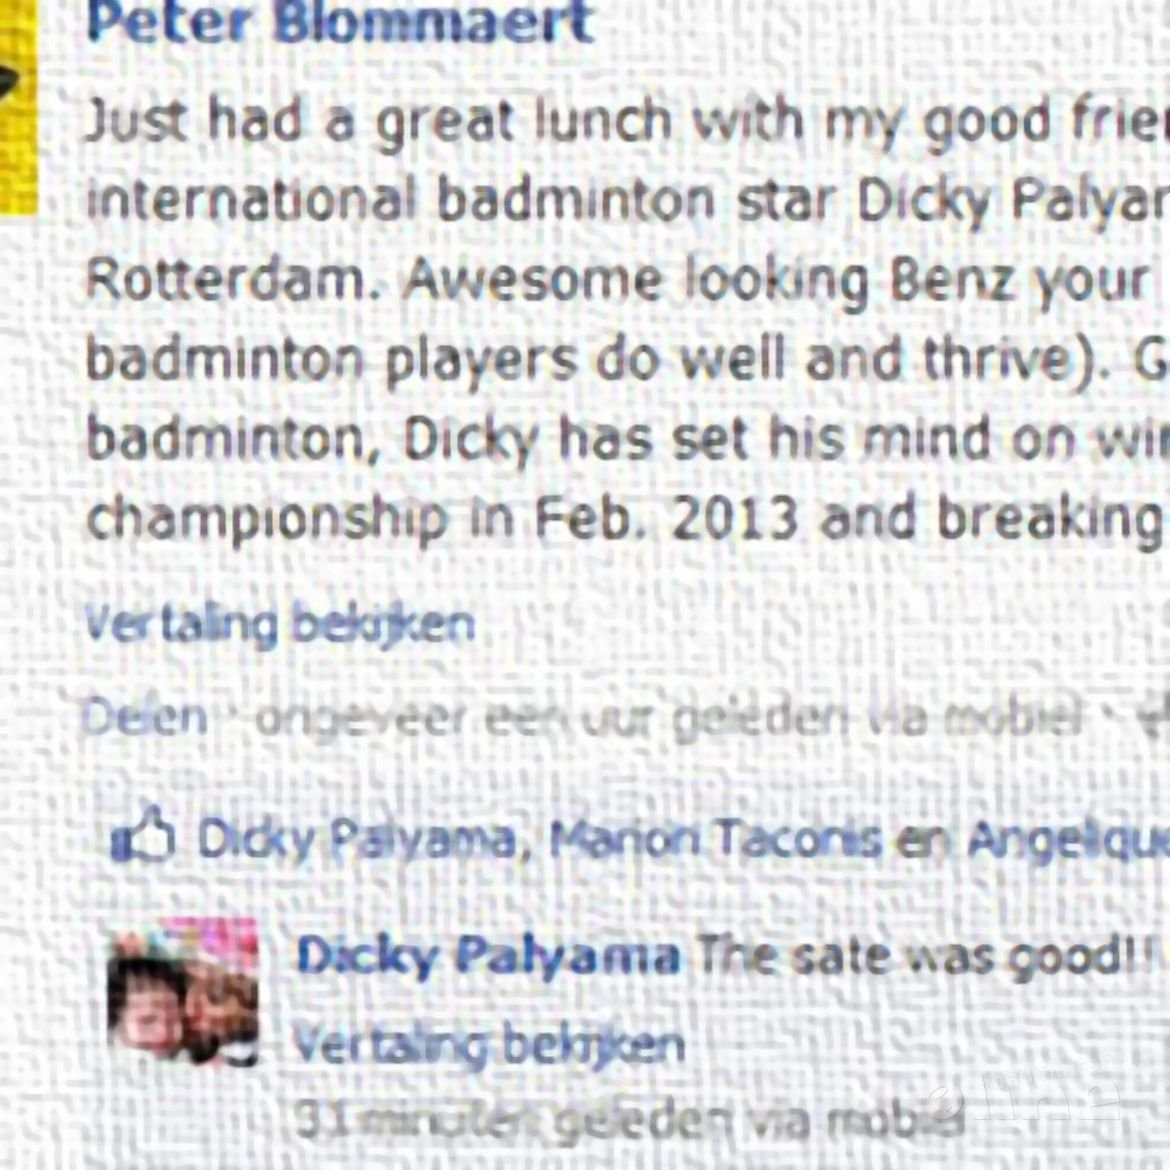 Dicky Palyama gunning for 10th National Championship in February 2013